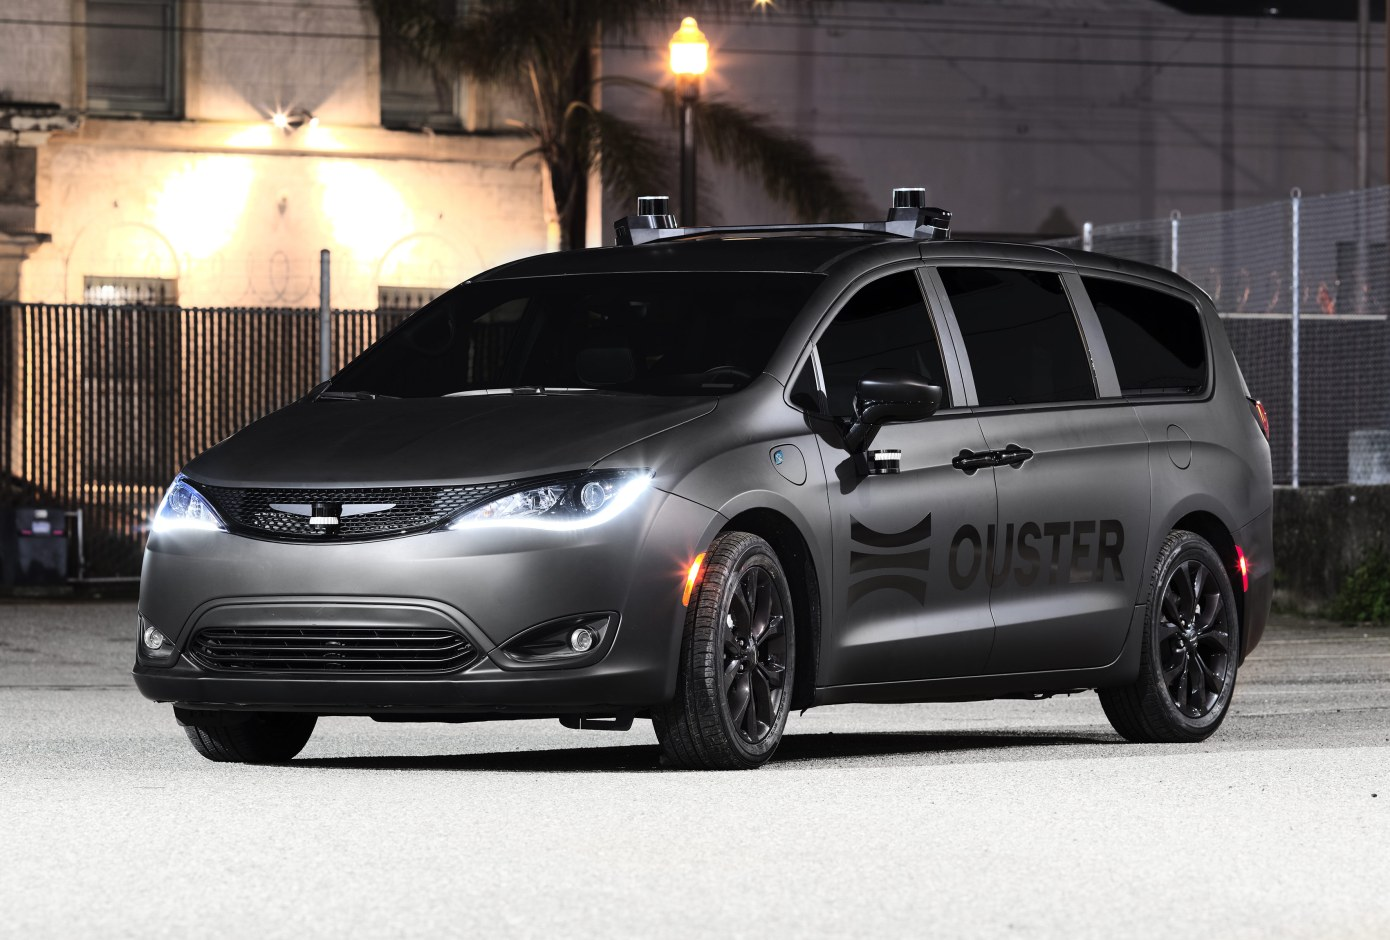 ouster-lidar-starts-automotive-division,-challenges-argo.ai-and-waymo